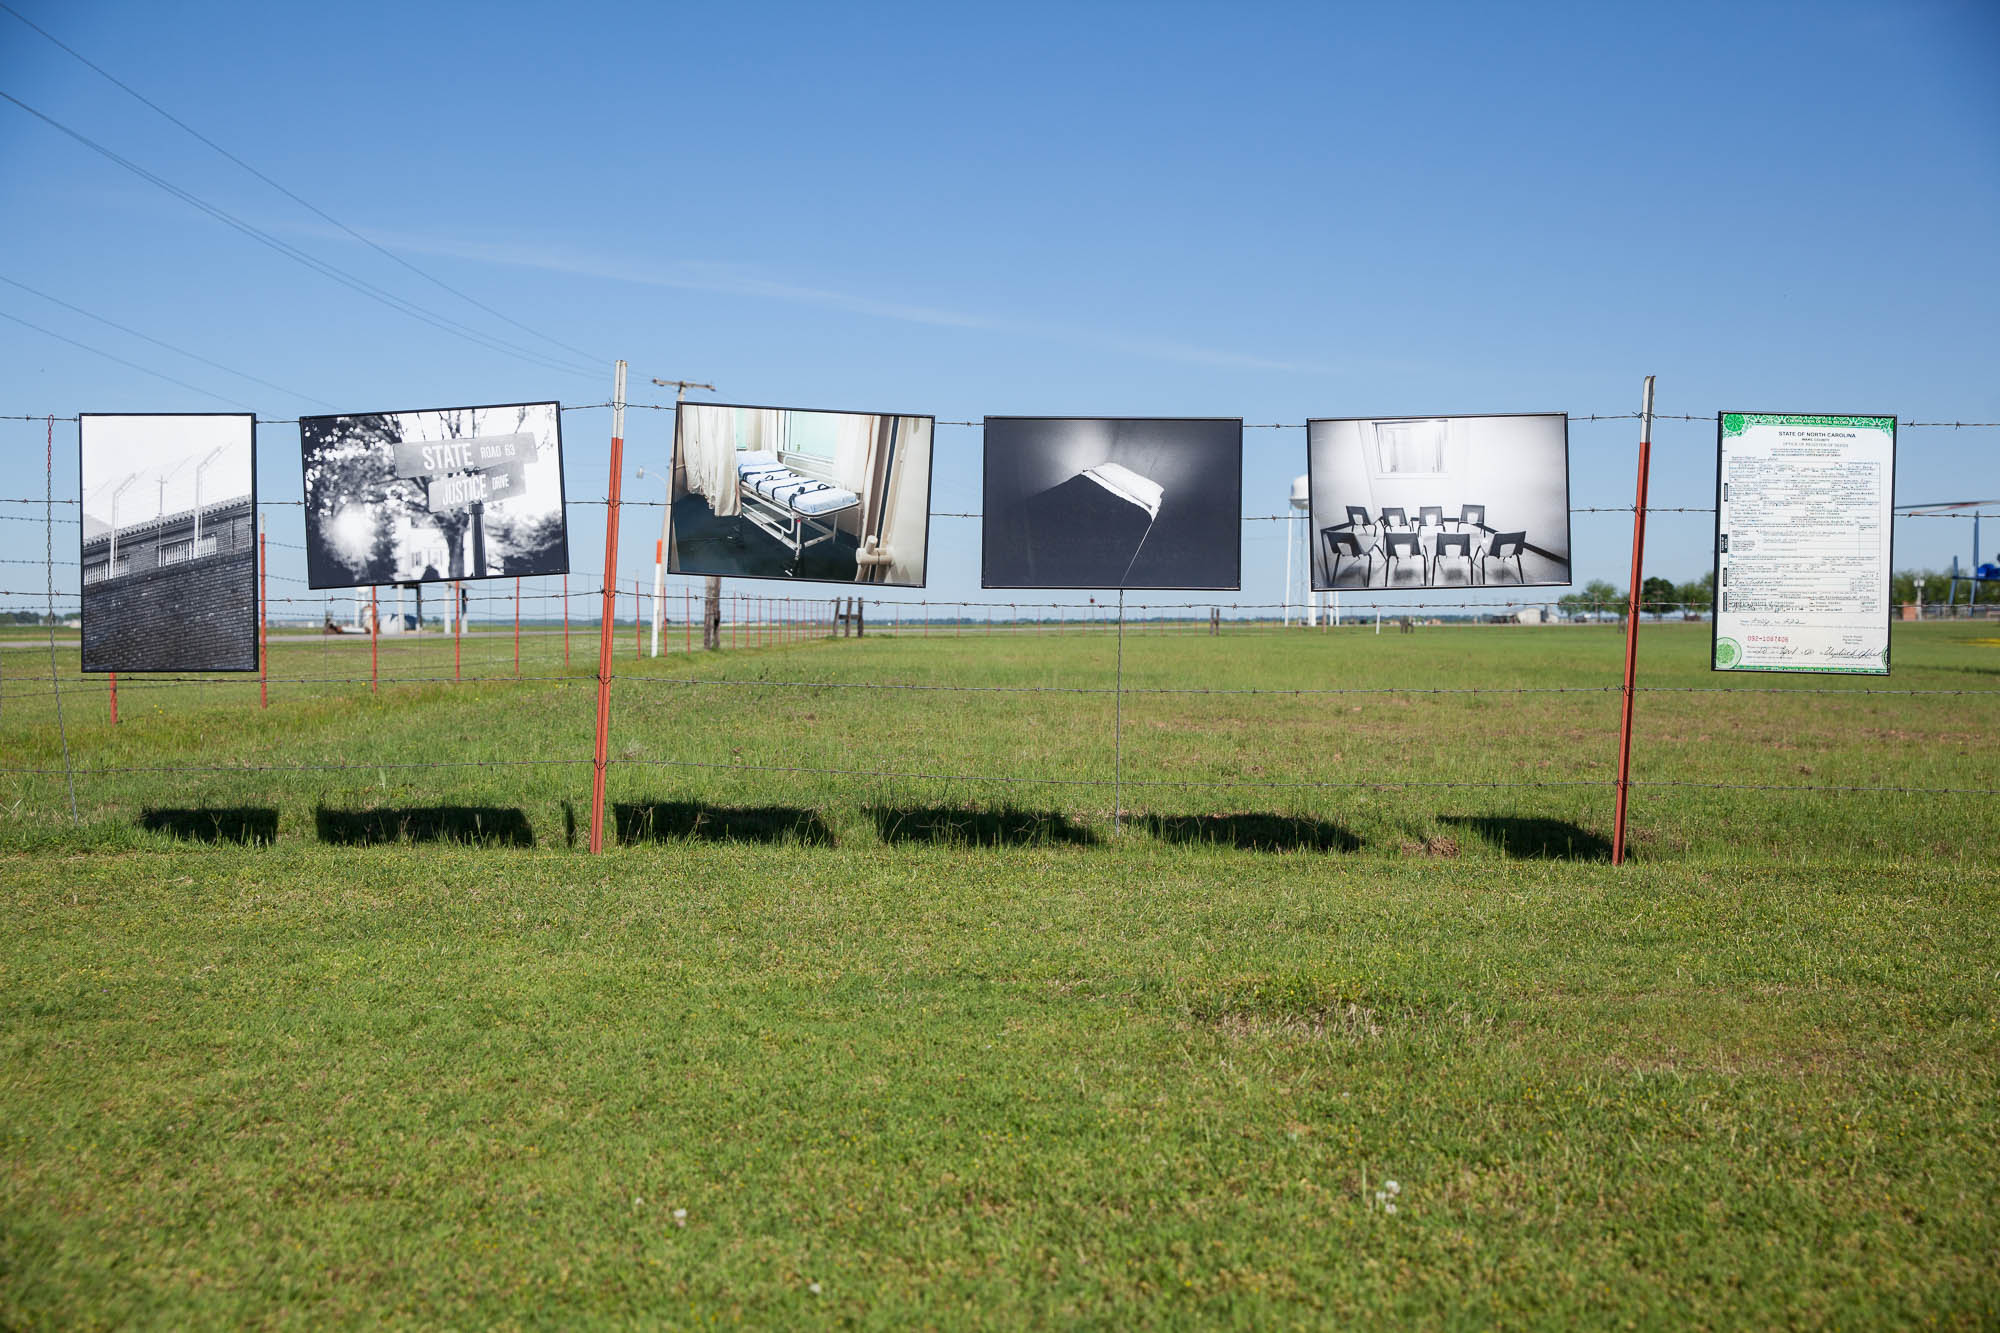 Scott Langley's death penalty photography exhibit, hanging on barbed wire fencing outside the Arkansas execution facilities.